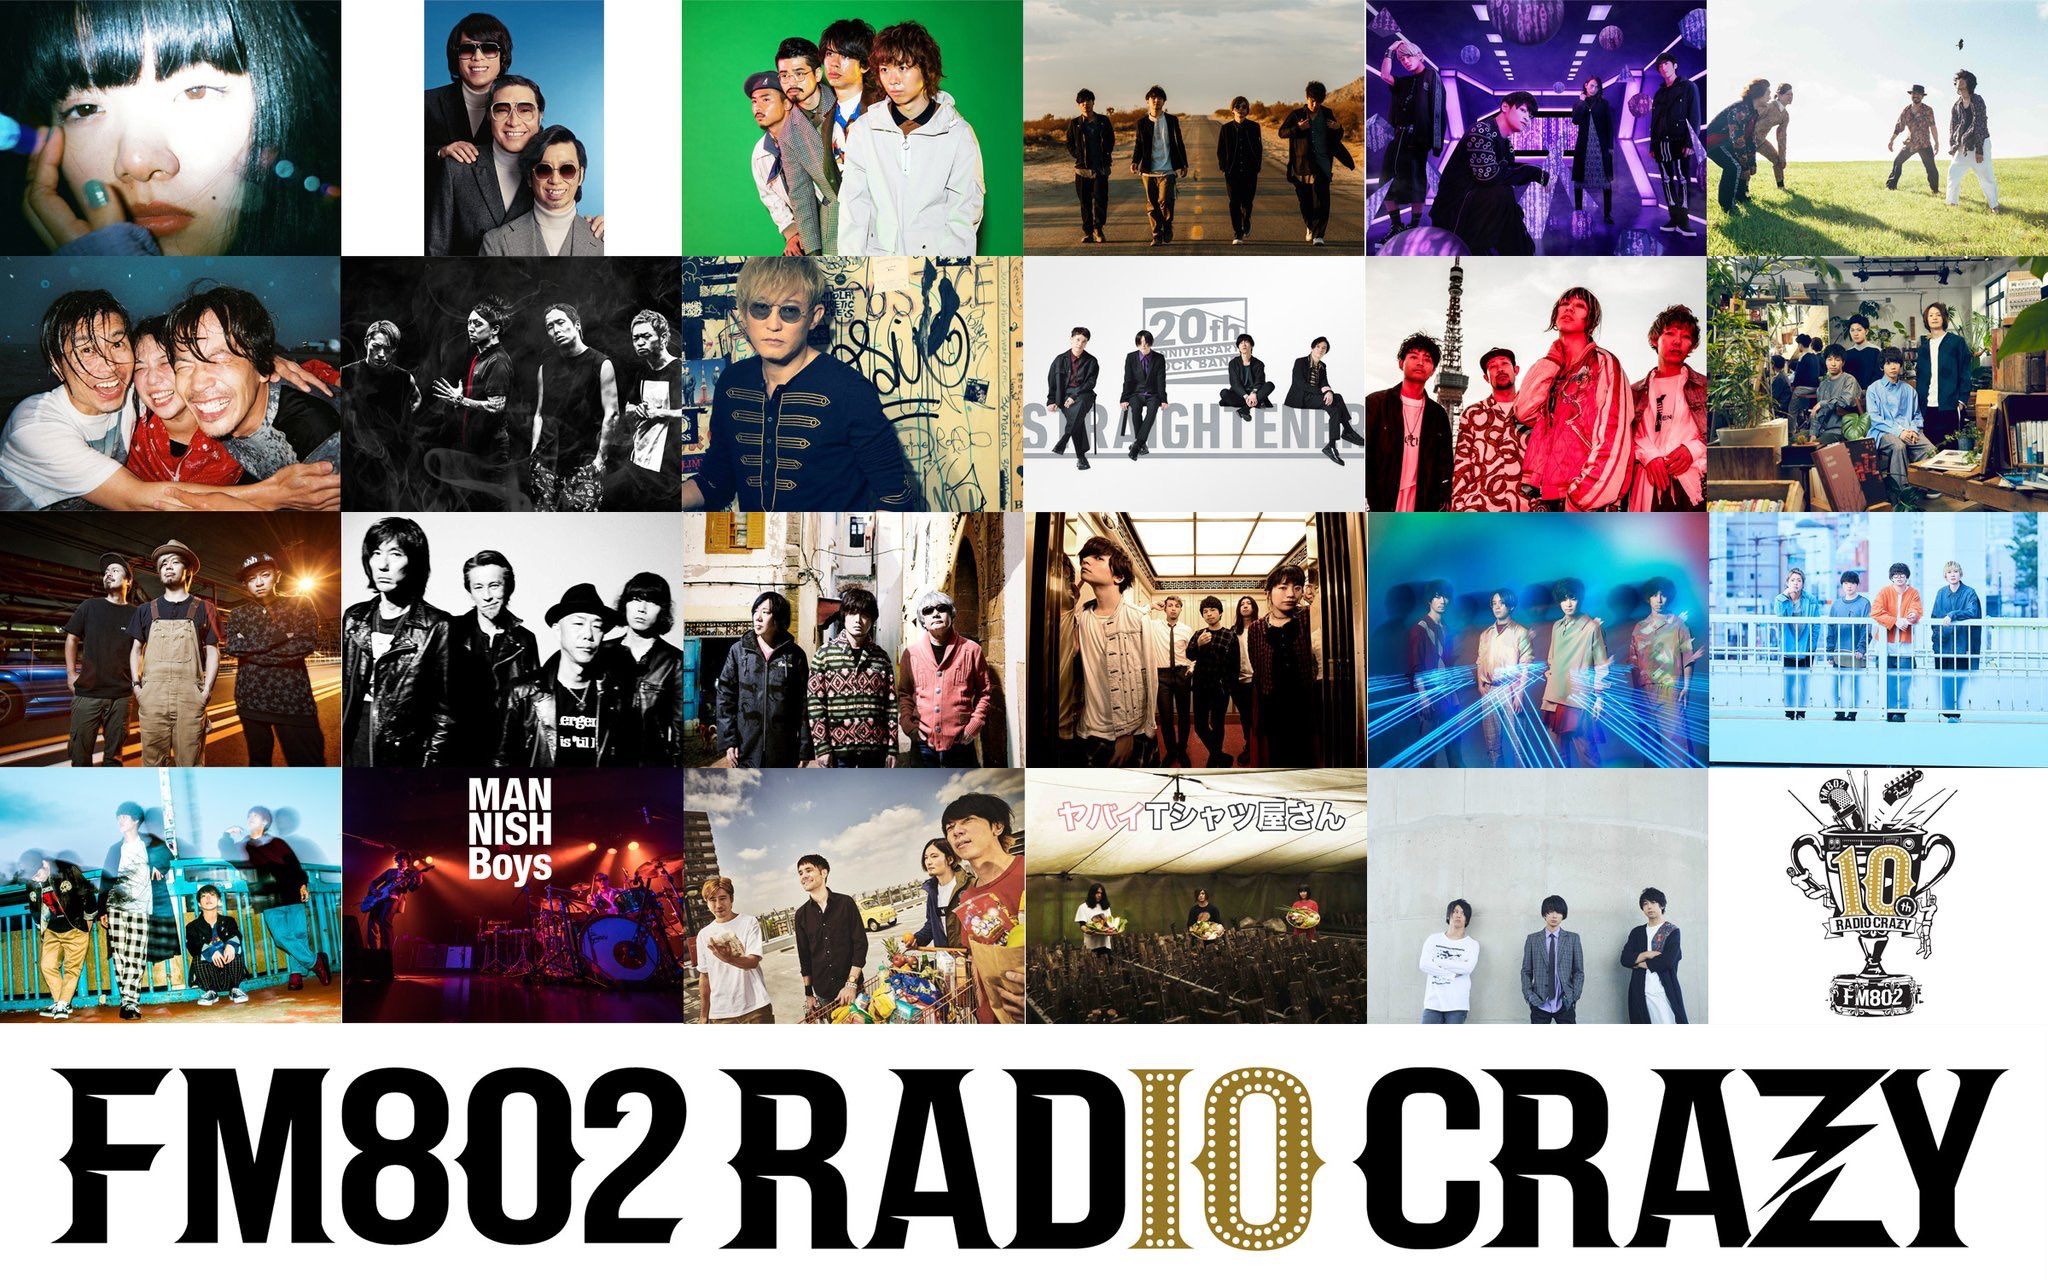 FM802 ROCK FESTIVAL RADIO CRAZY